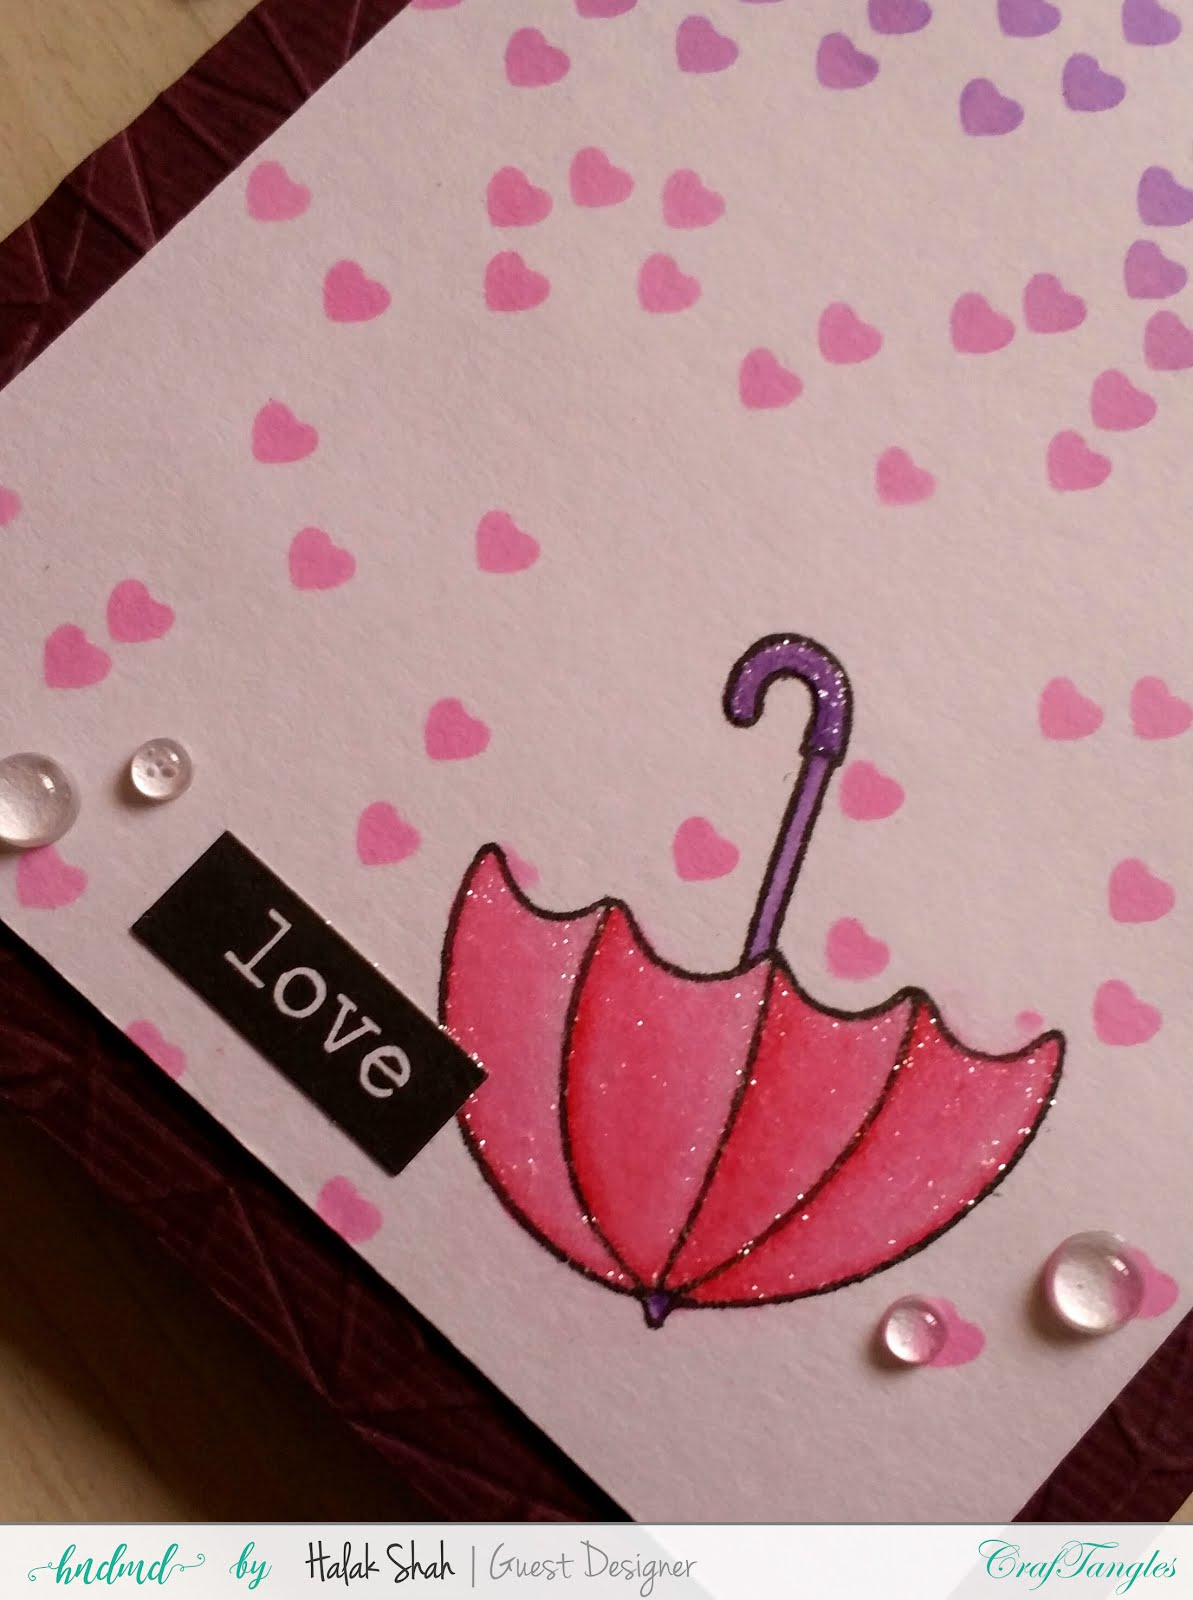 Different ways to create cards using CrafTangles Products 7